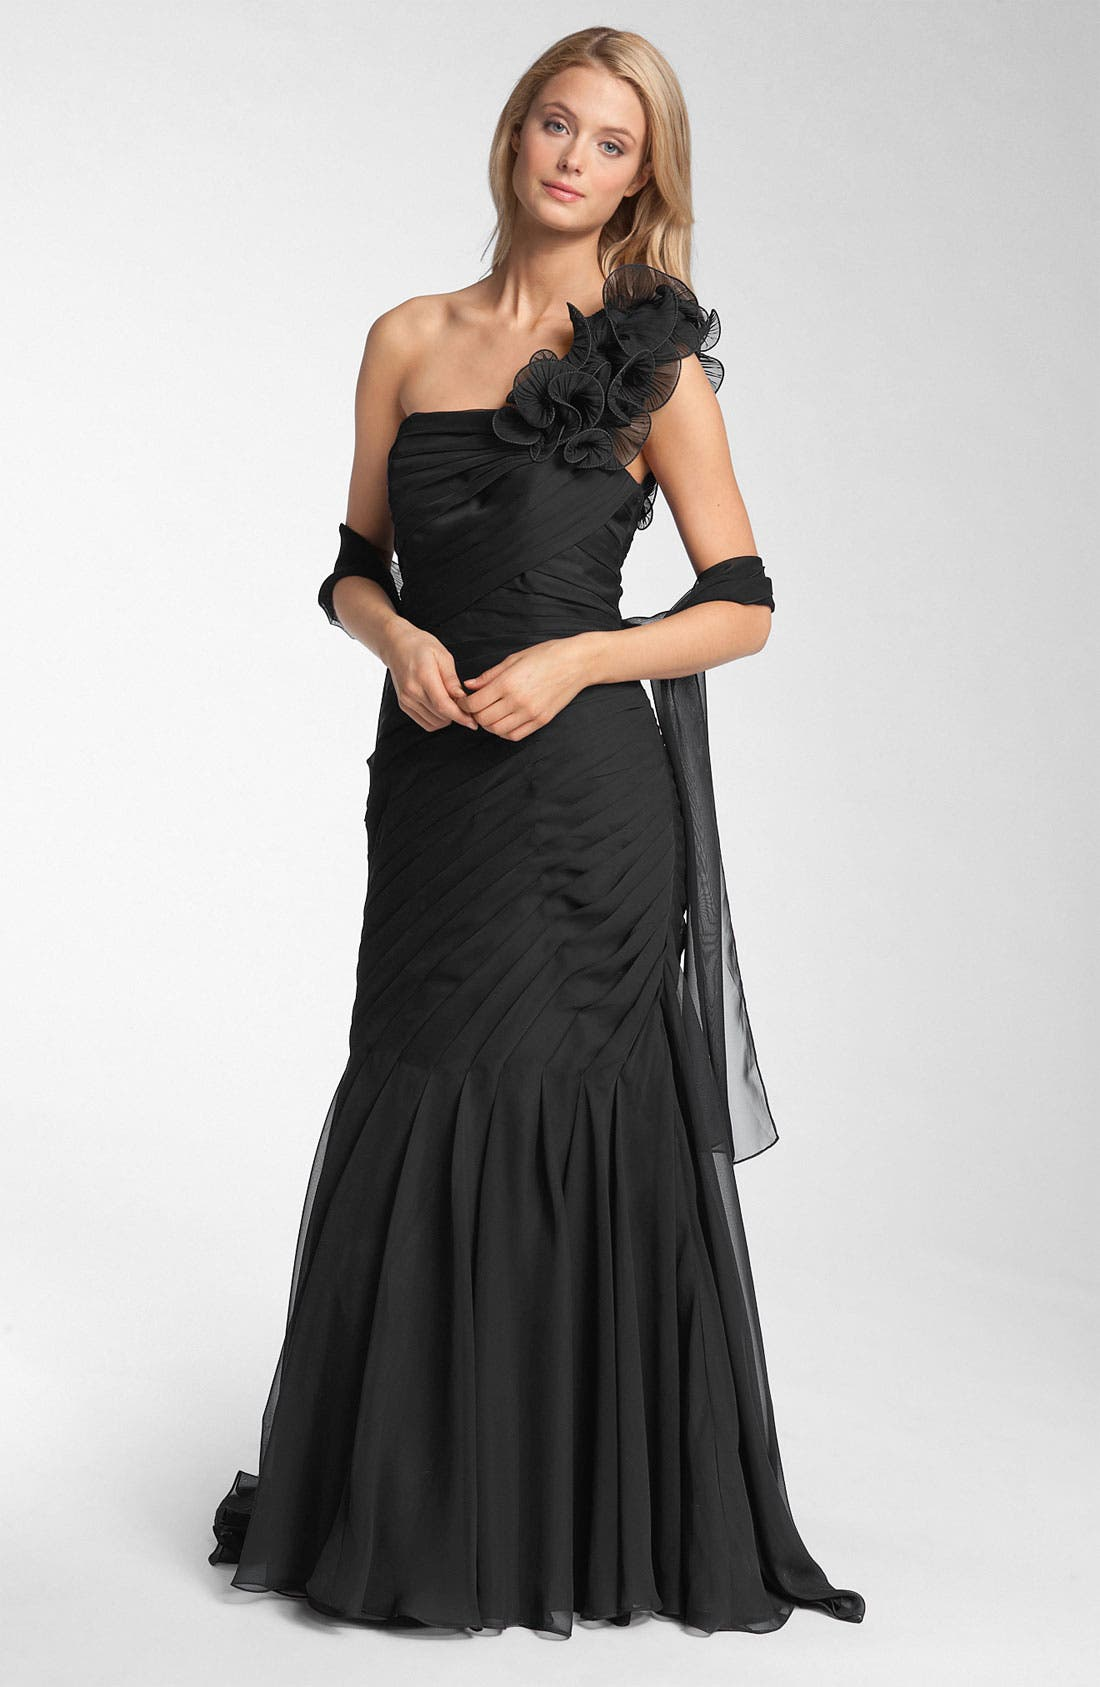 Veni Infantino Pleated One Shoulder Ruffle Gown,                             Main thumbnail 1, color,                             001